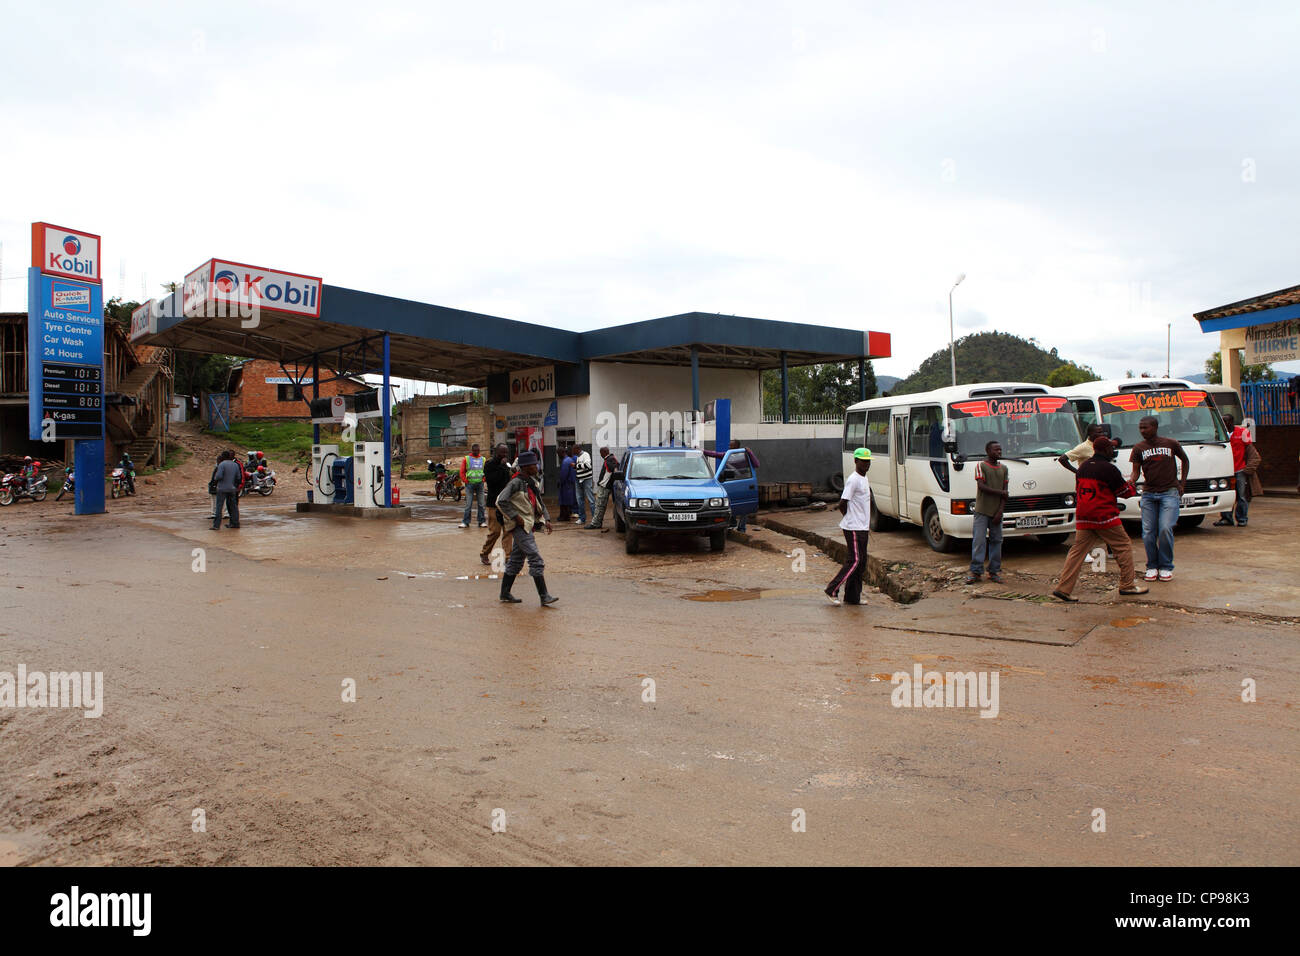 A Kobil filling (gas) station in the town of Gisenyi in Rwanda. - Stock Image